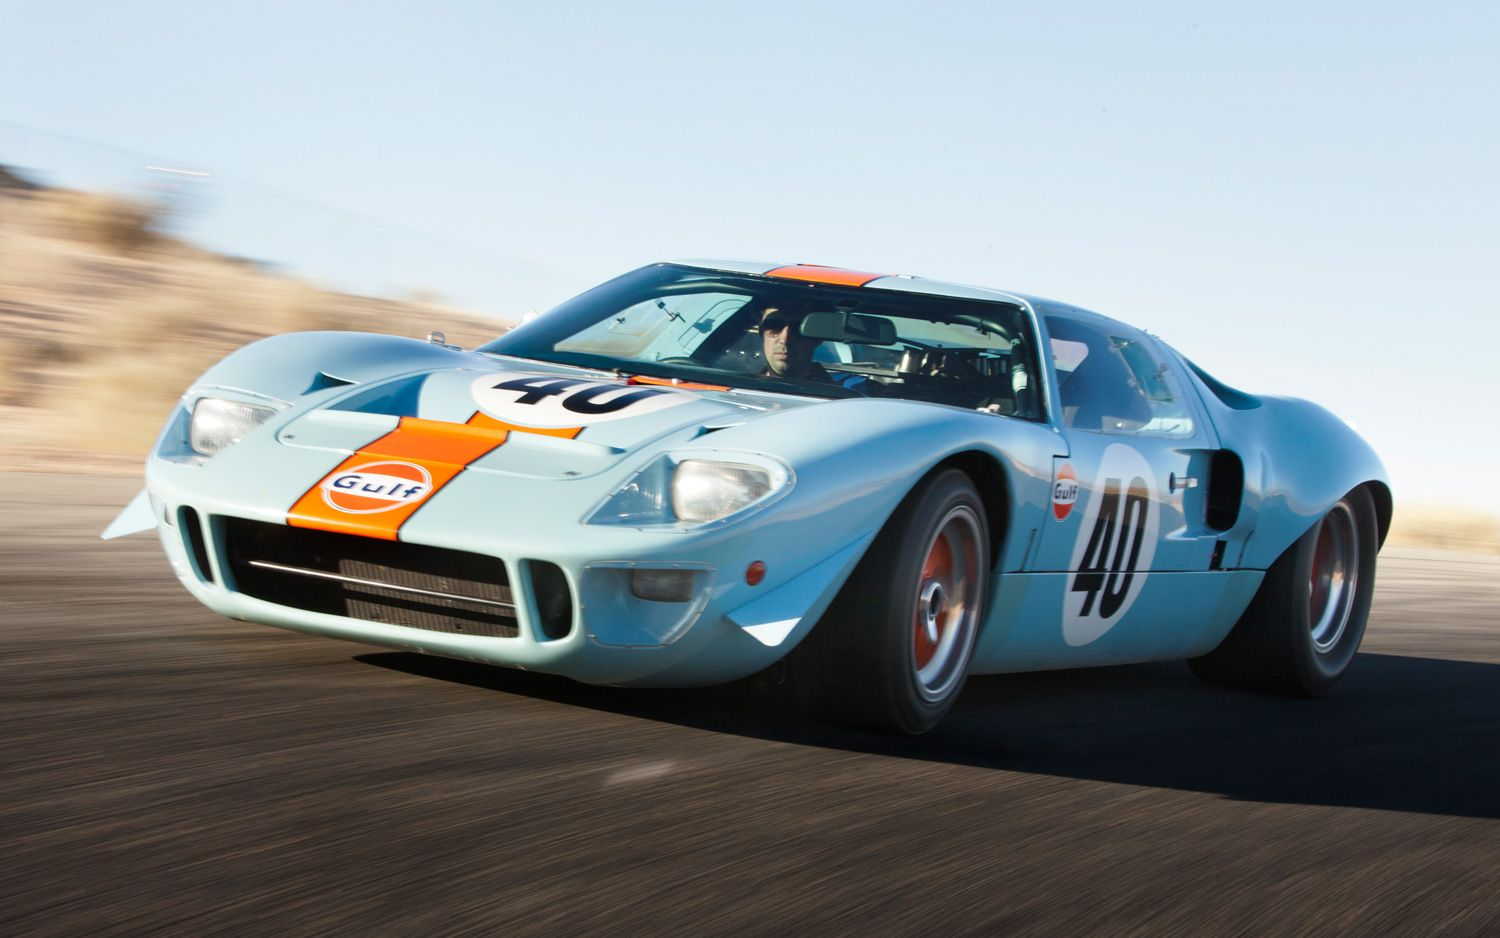 1968 Ford Gt40 Gulf Mirage Front Three Quarter Photo 6 Ford Gt Ford Gt40 Race Car Sets